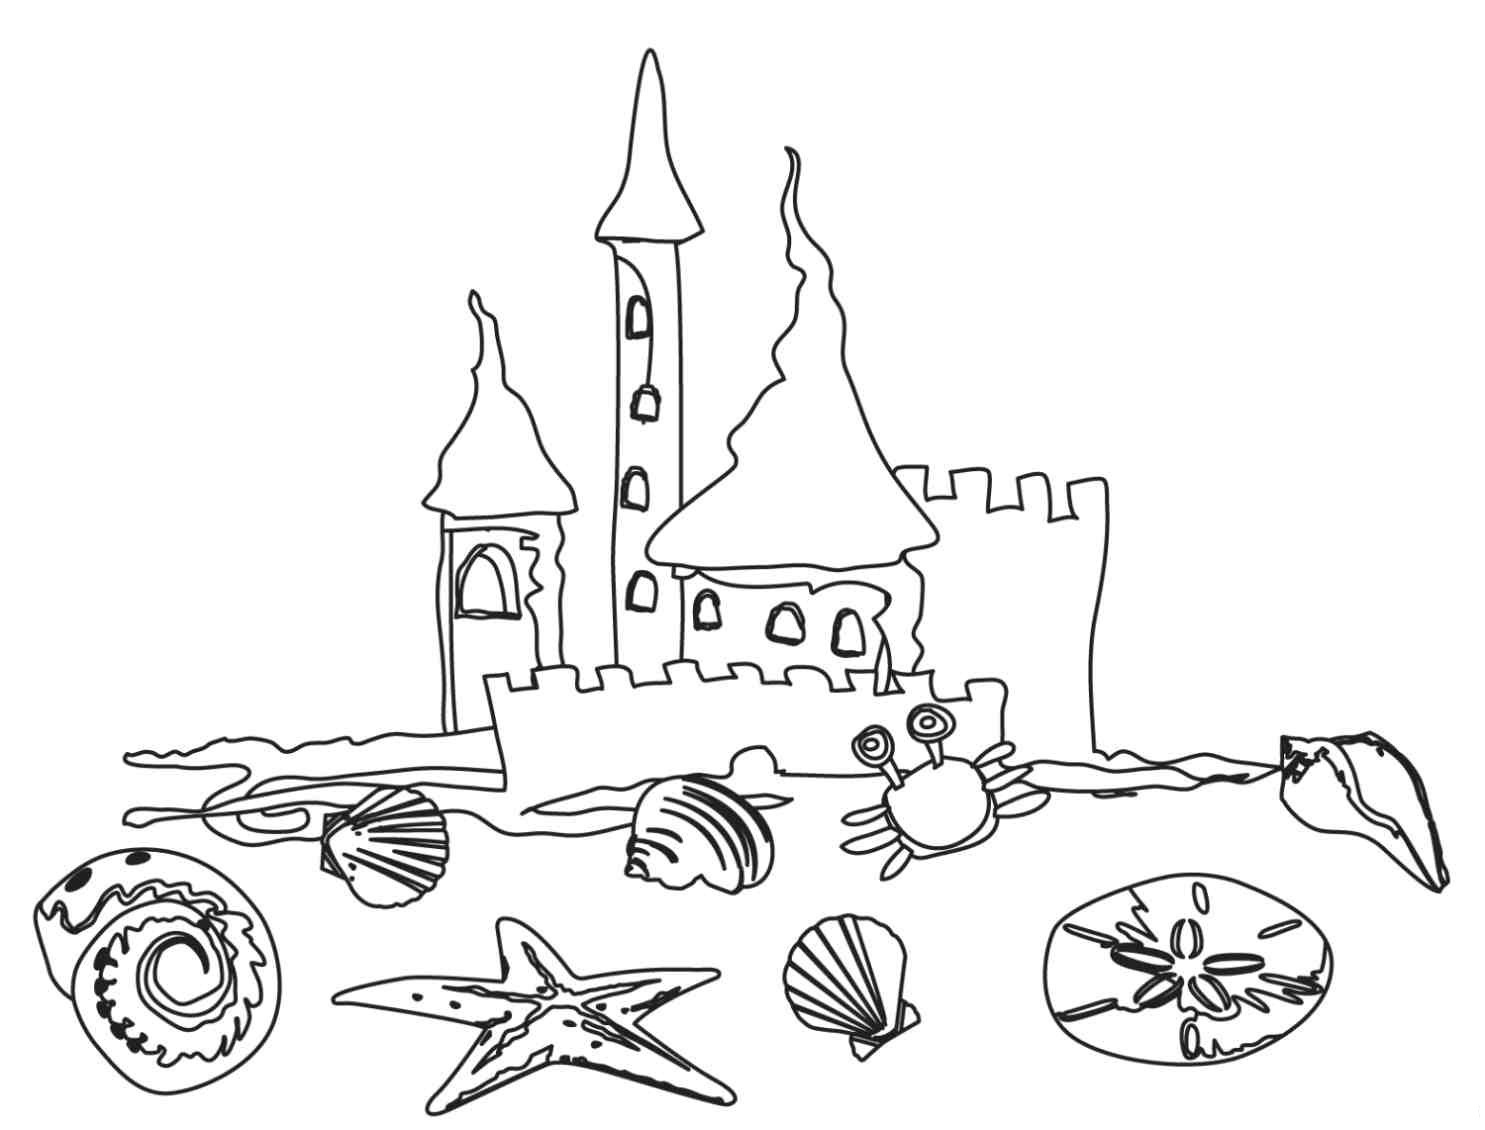 Uncategorized Beach Coloring Pages free printable beach coloring pages for kids preschool